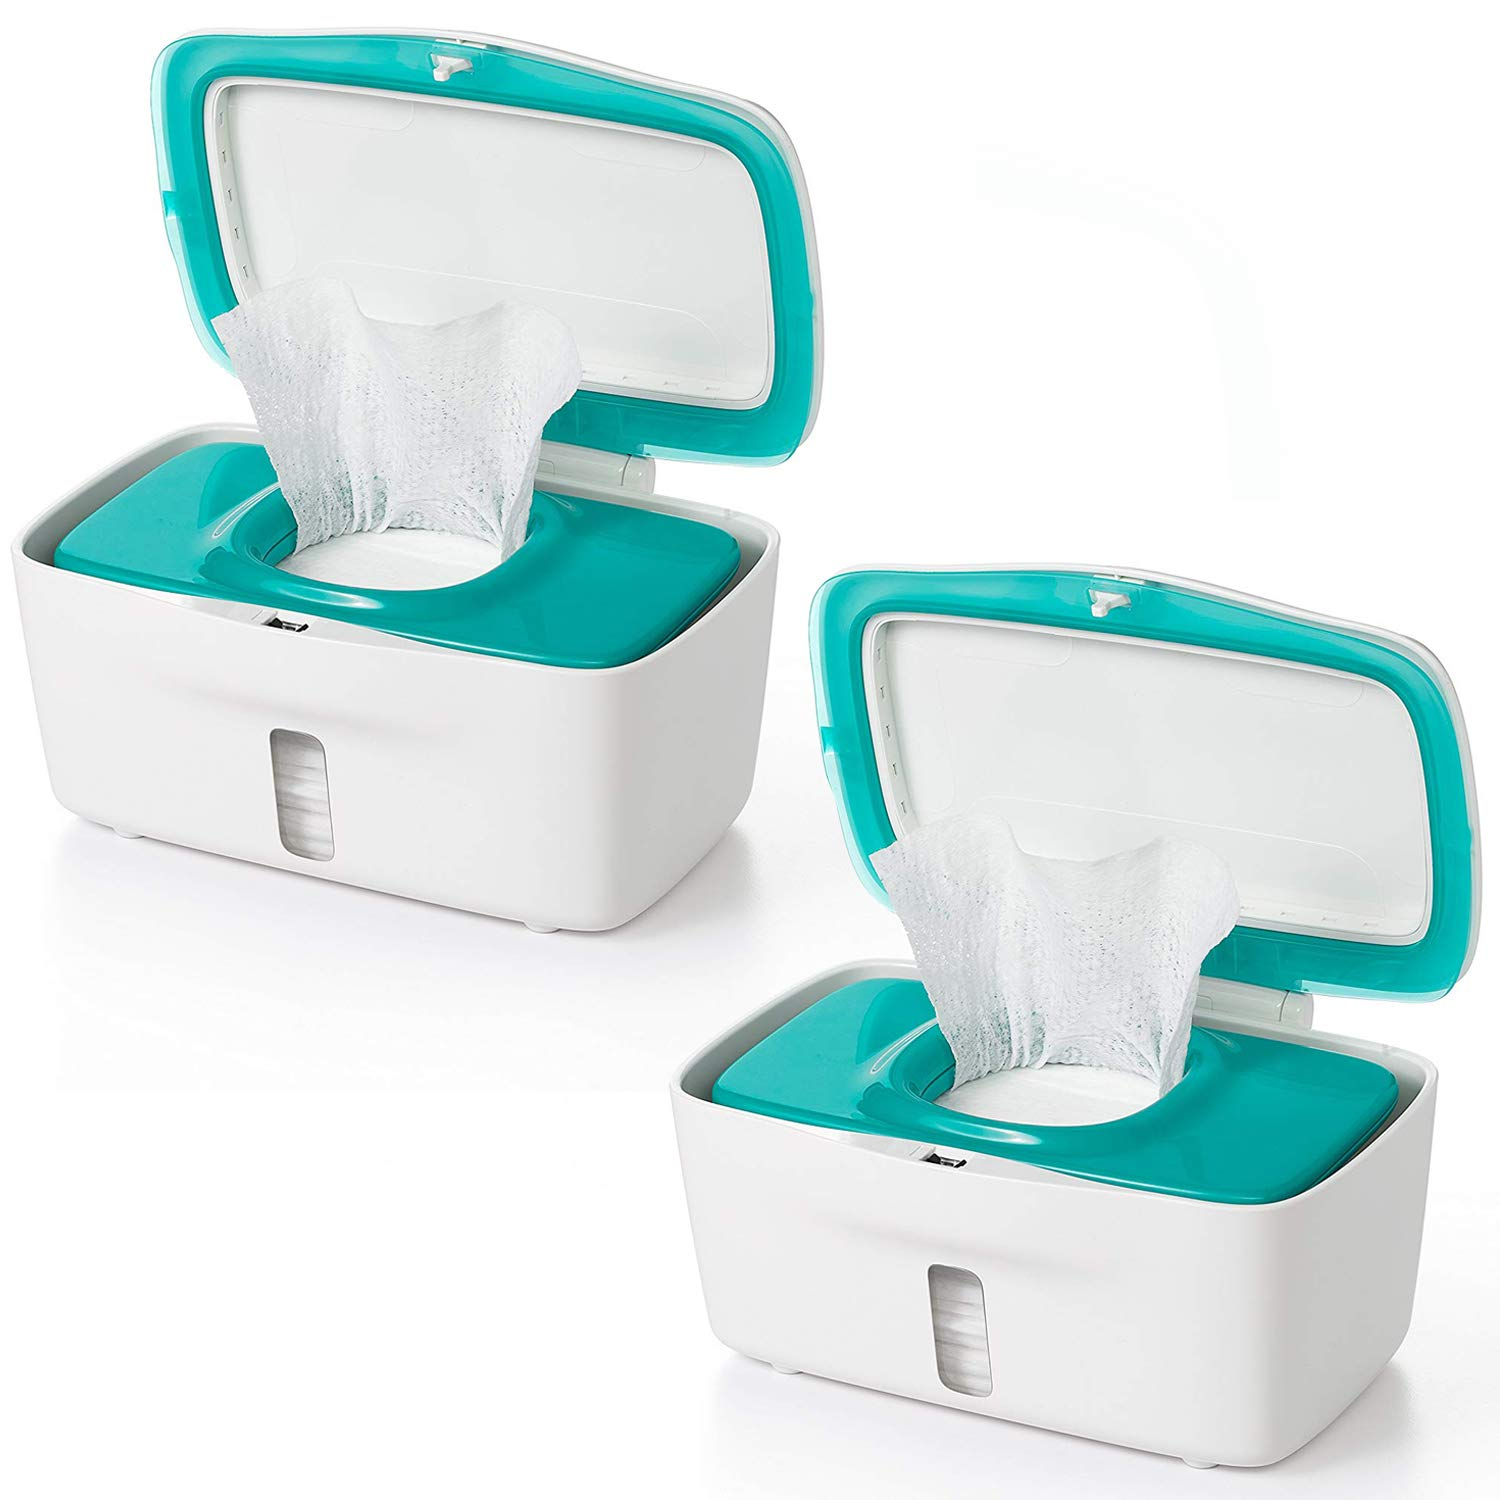 OXO TOT Perfect Pull Baby Wipes Dispenser, Teal - Set of 2 by OXO